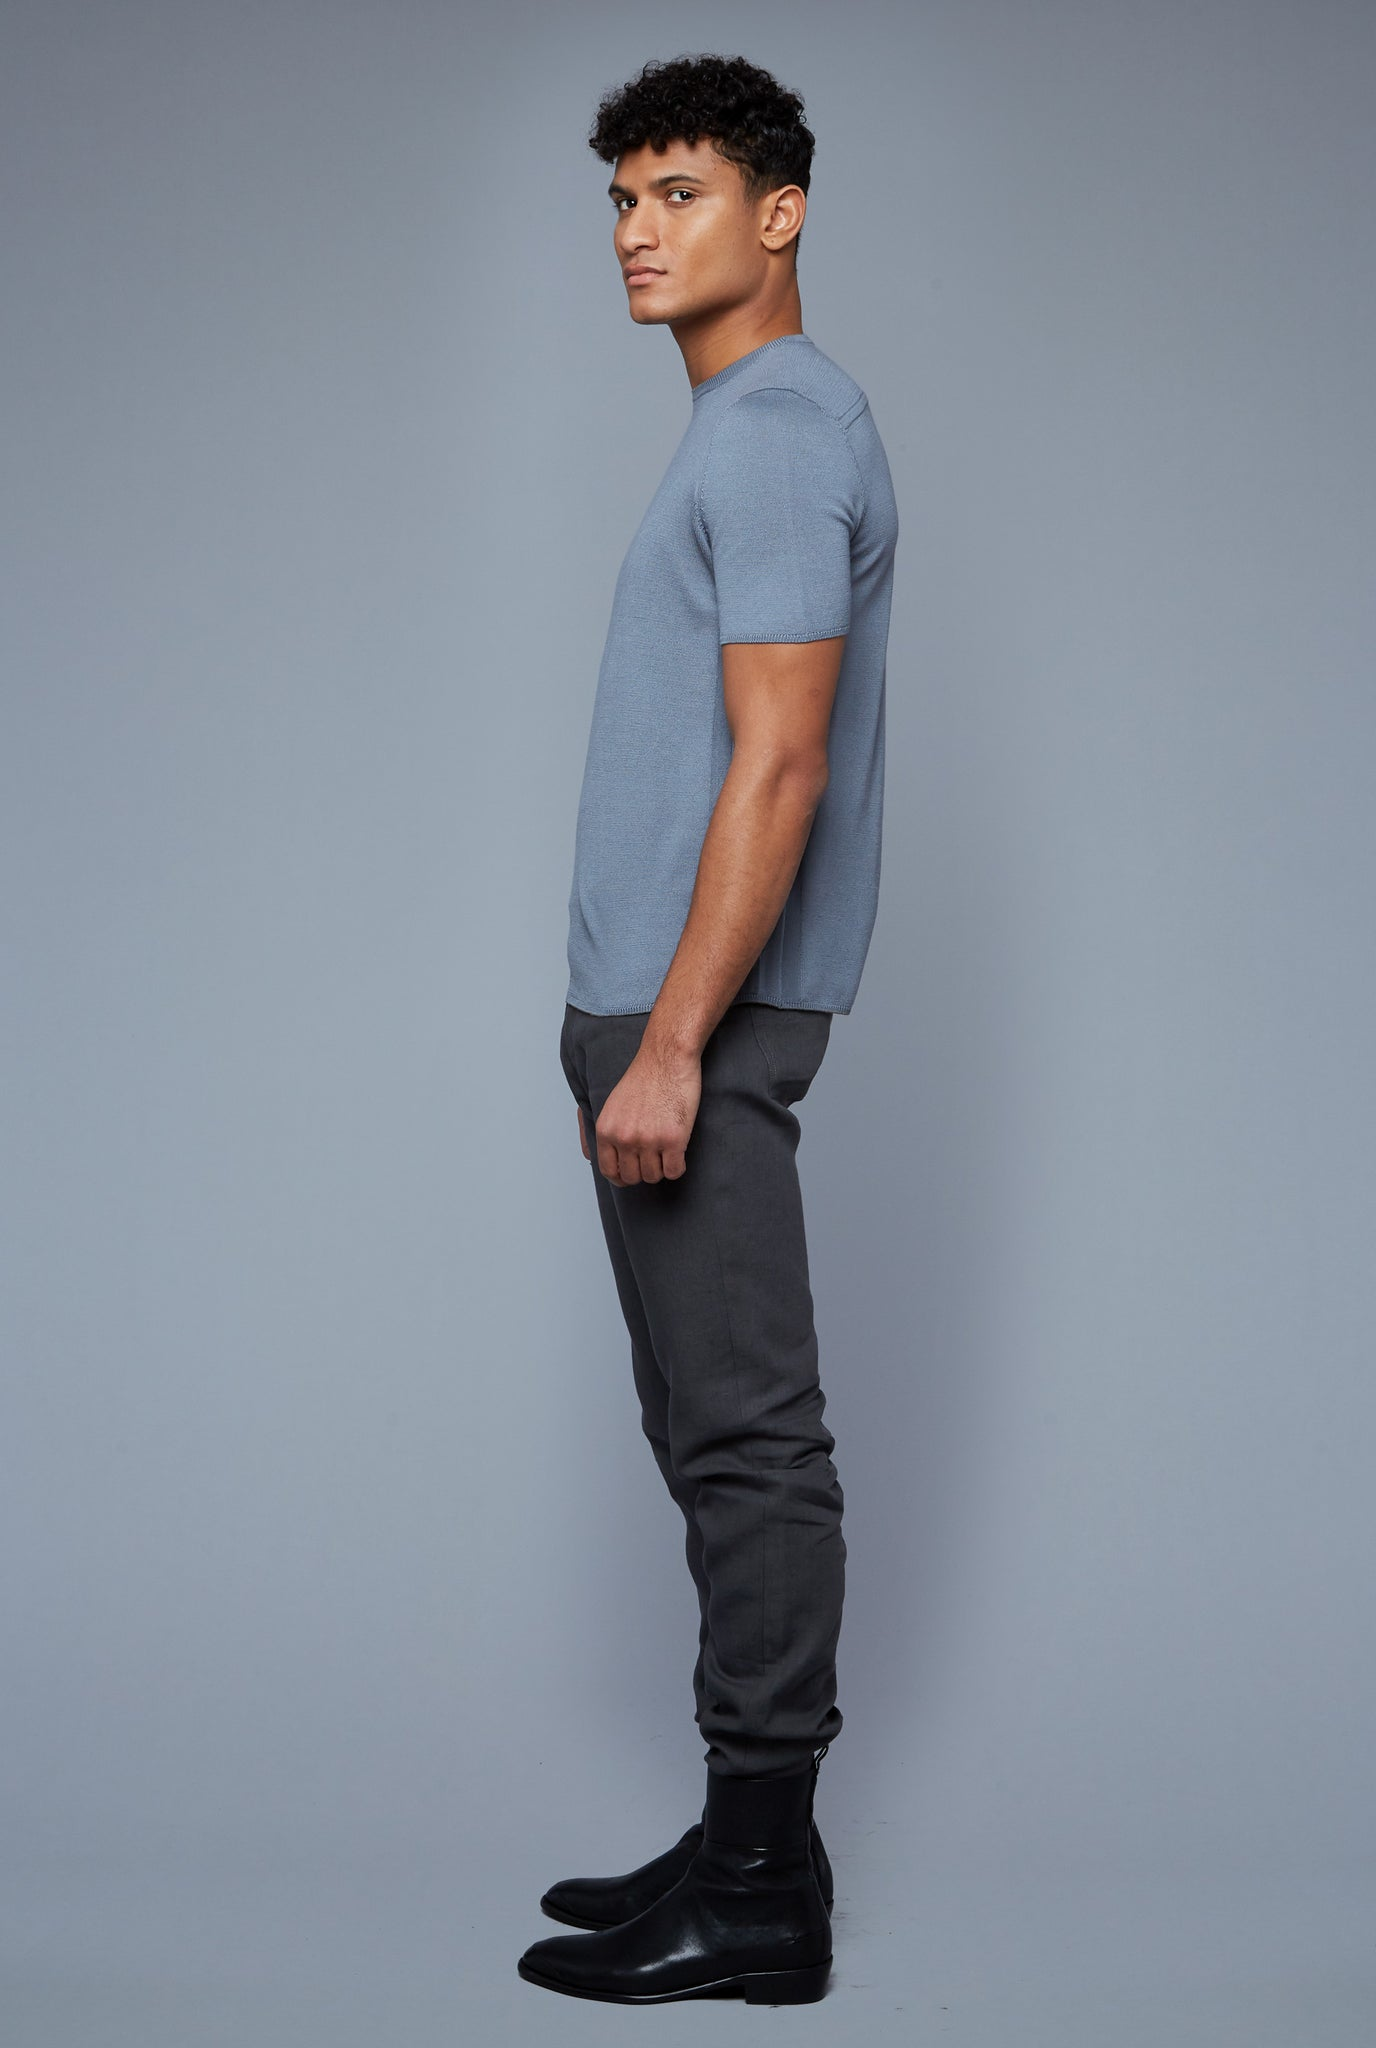 Side View: Model Tre Boutilier wearing Short Sleeve Sweater Tee